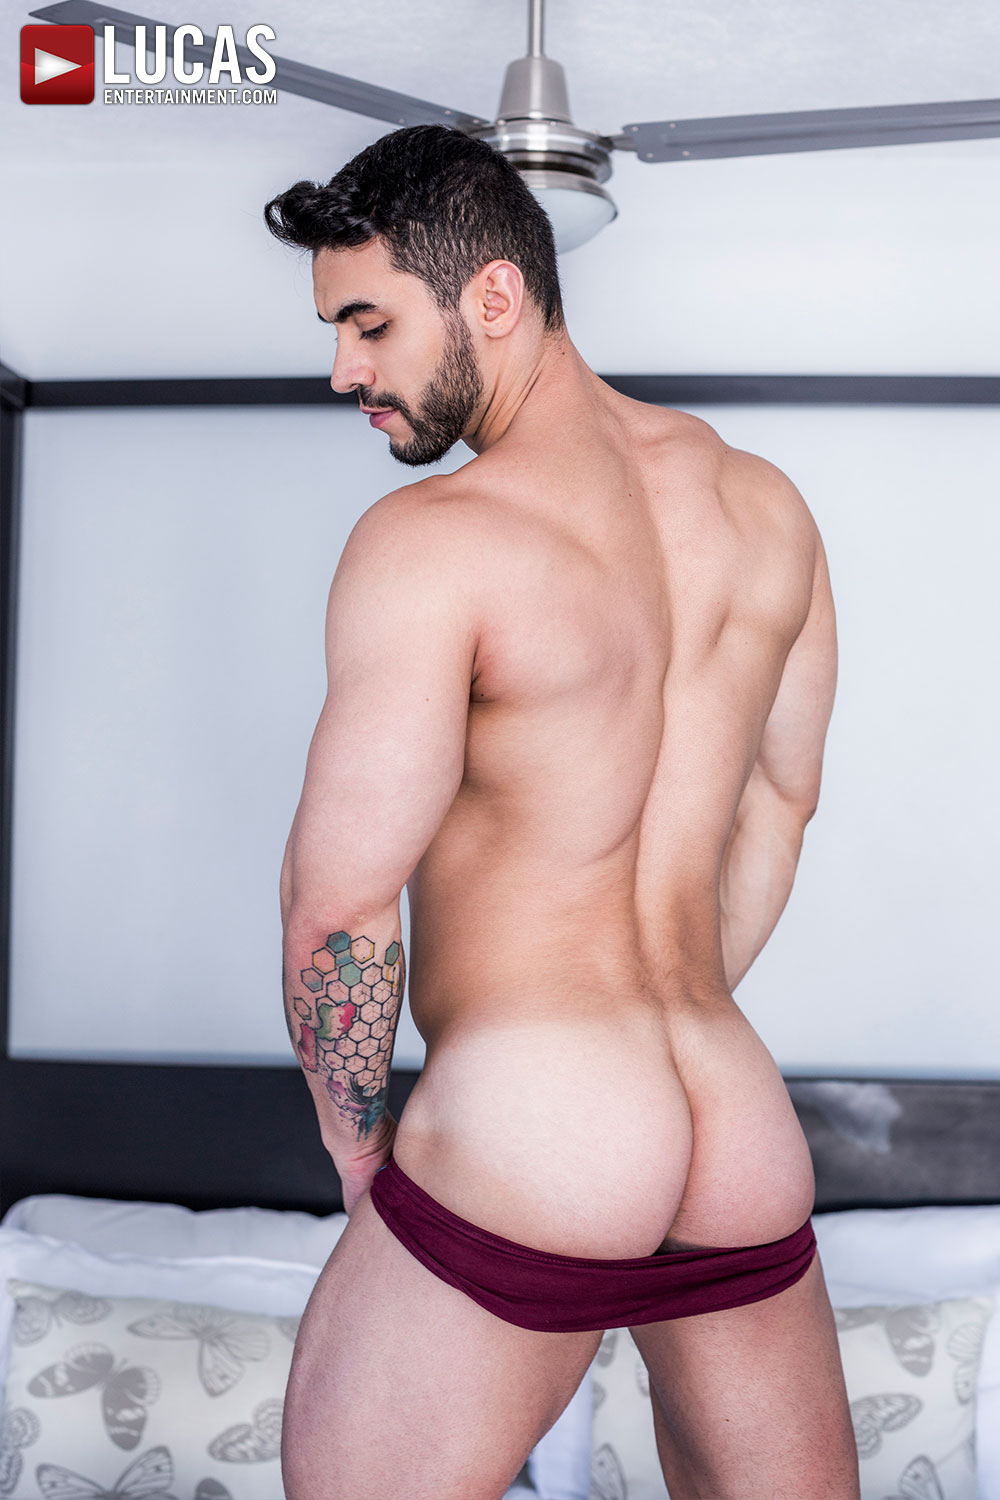 Arad Winwin 02 | Arab Gay Bareback Porn Star | Lucas Entertainment